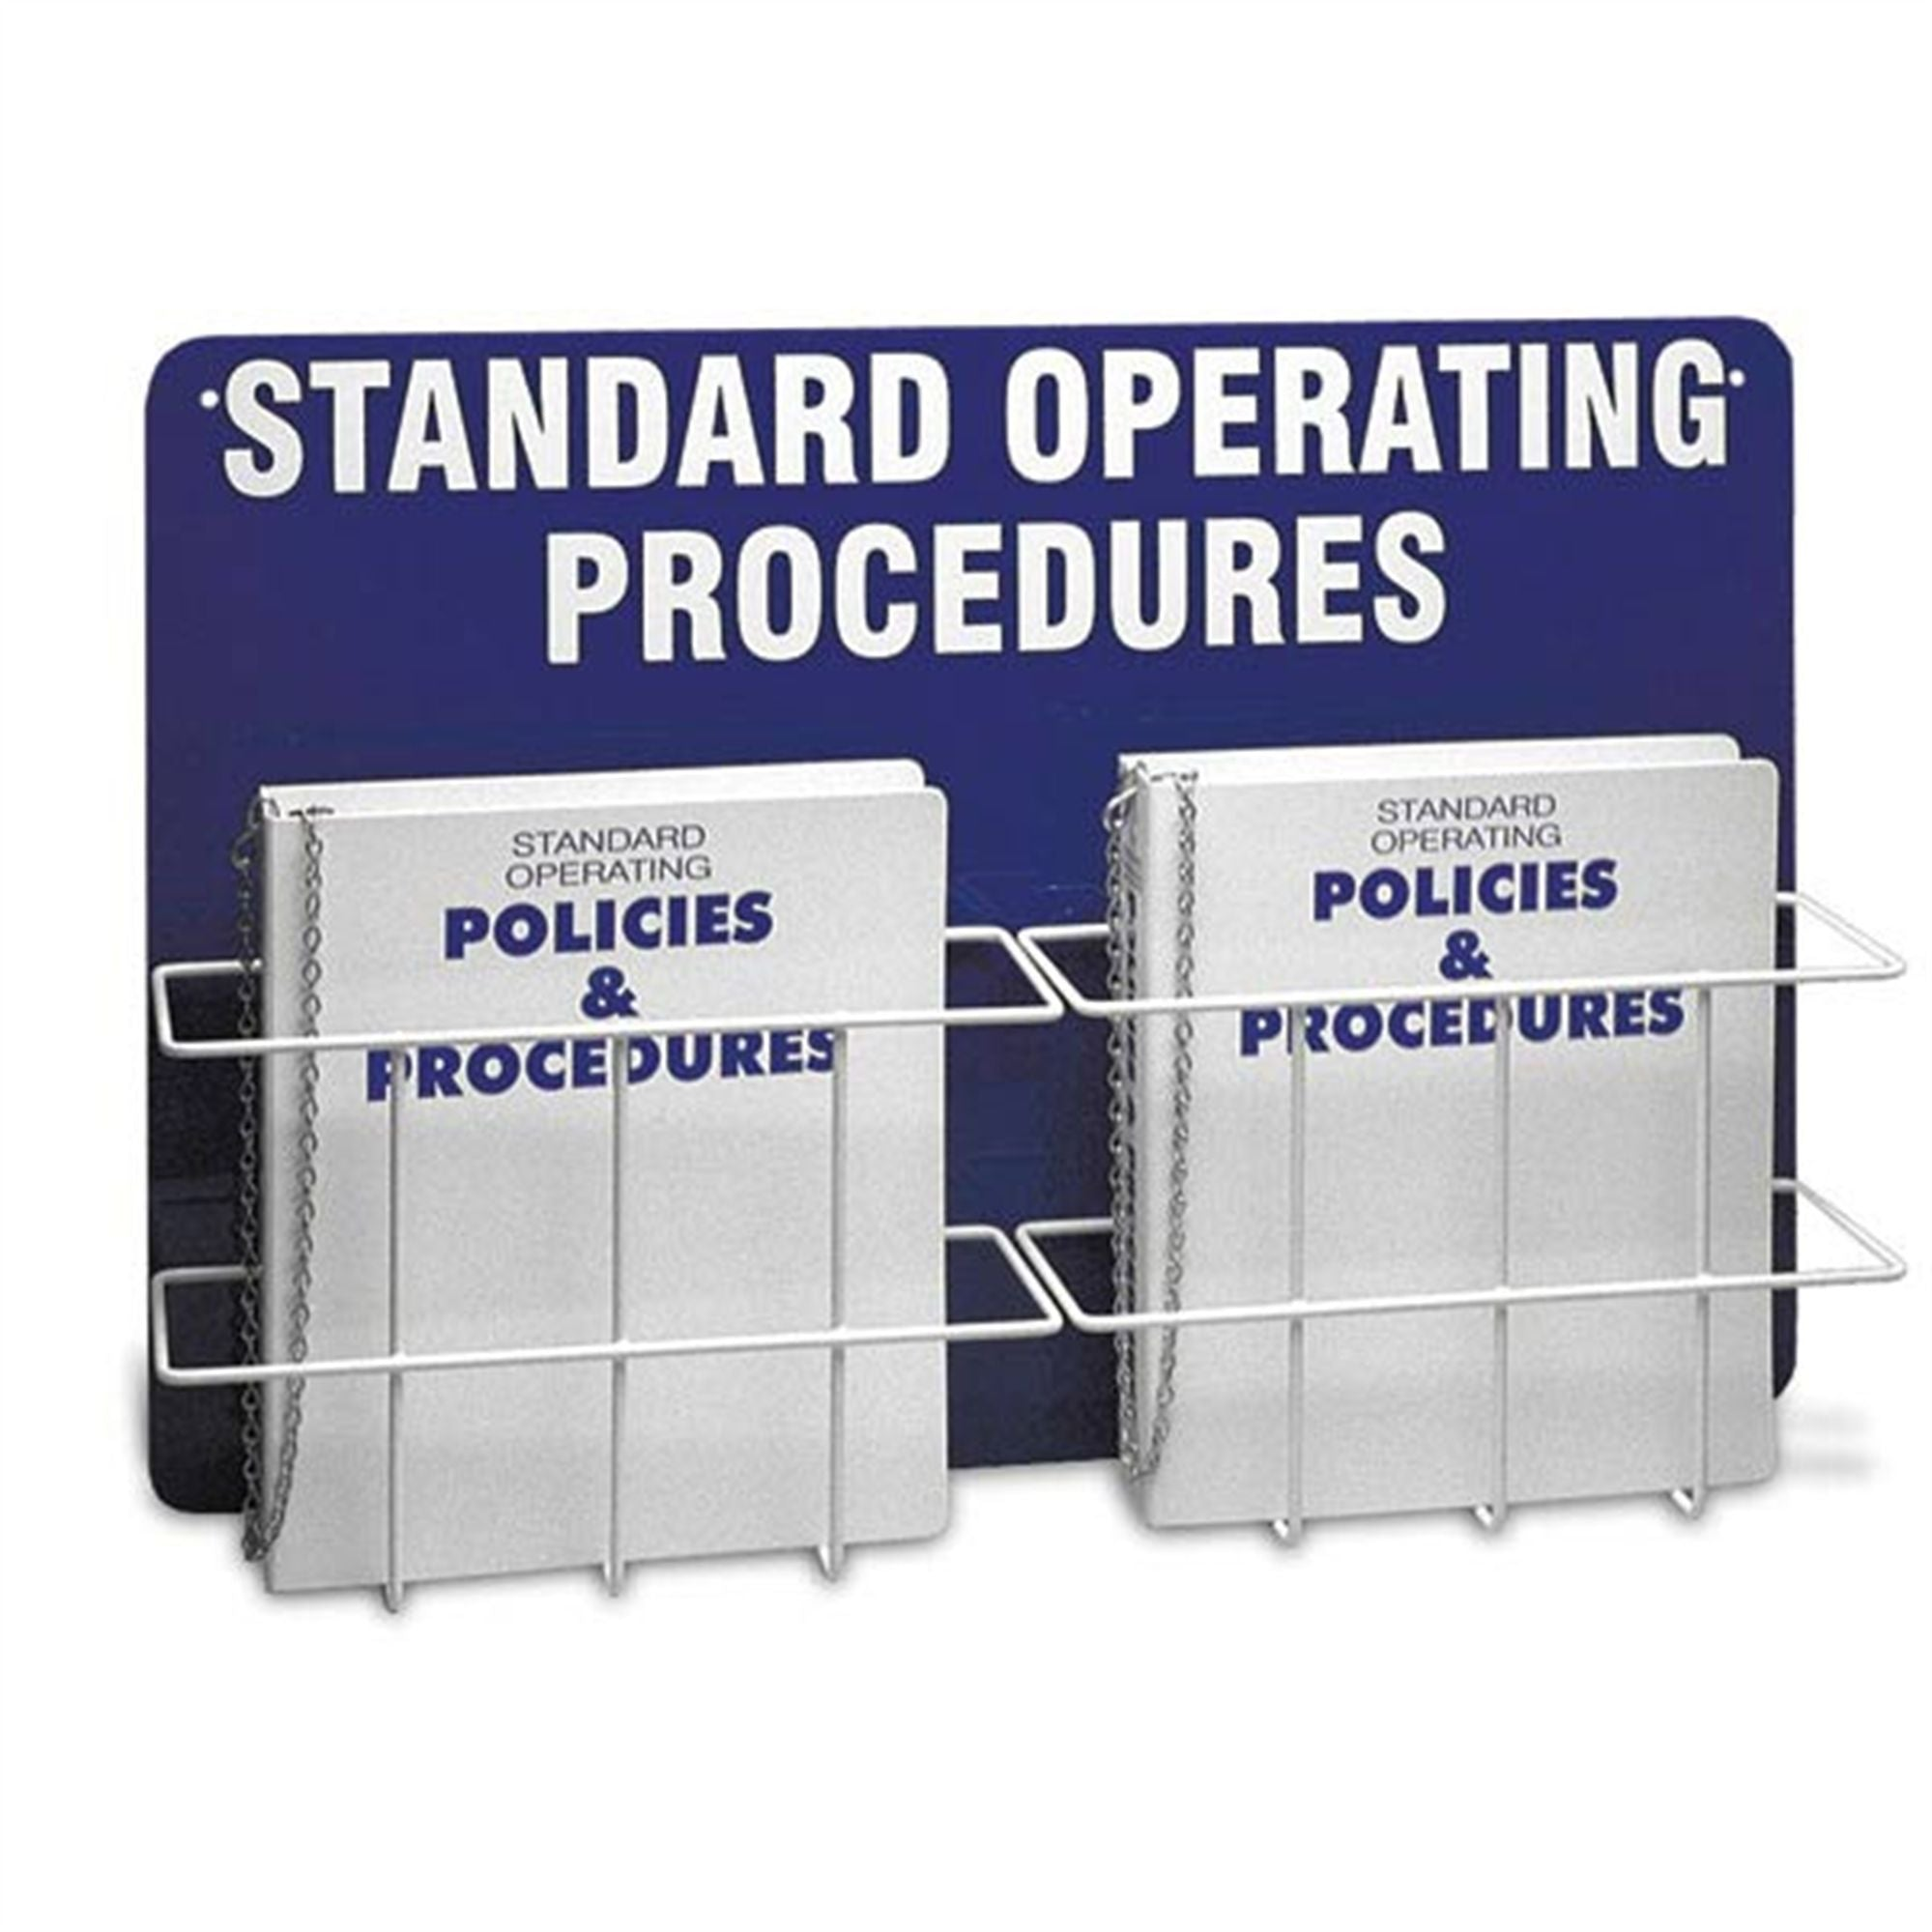 Standard Operating Procedures Binder and Holder with Wall-Mount Backboard, Double